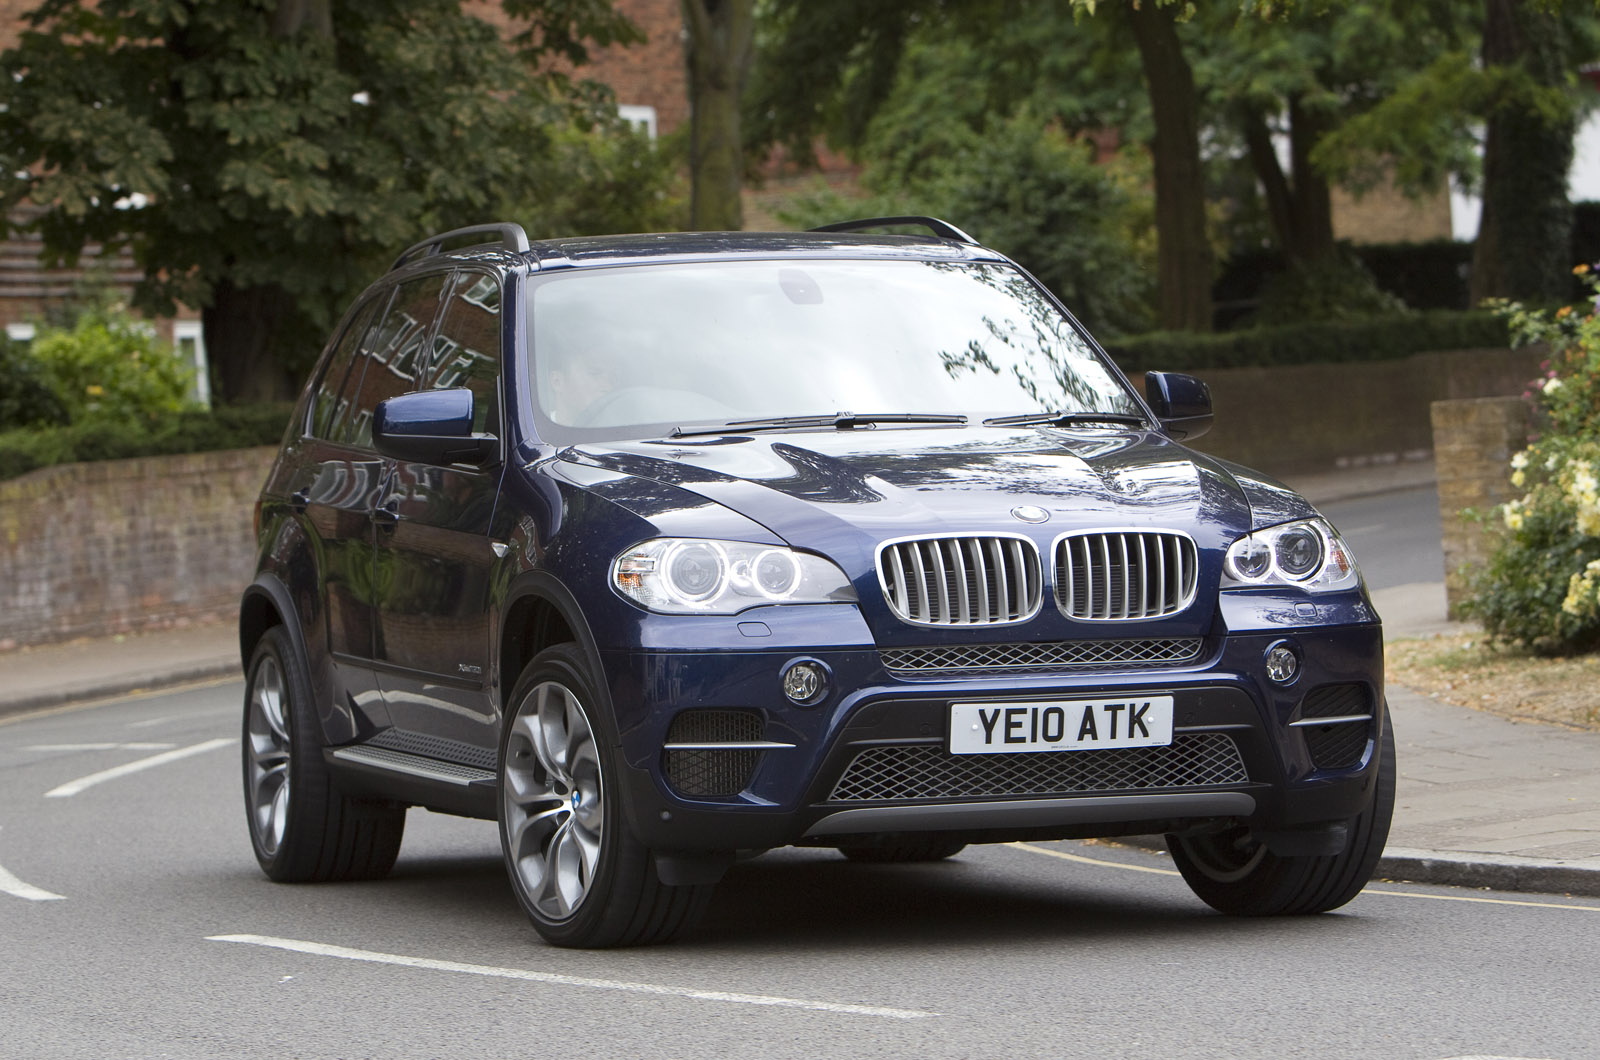 Coupe Series bmw x5 5.0 BMW X5 xDrive50i SE review | Autocar